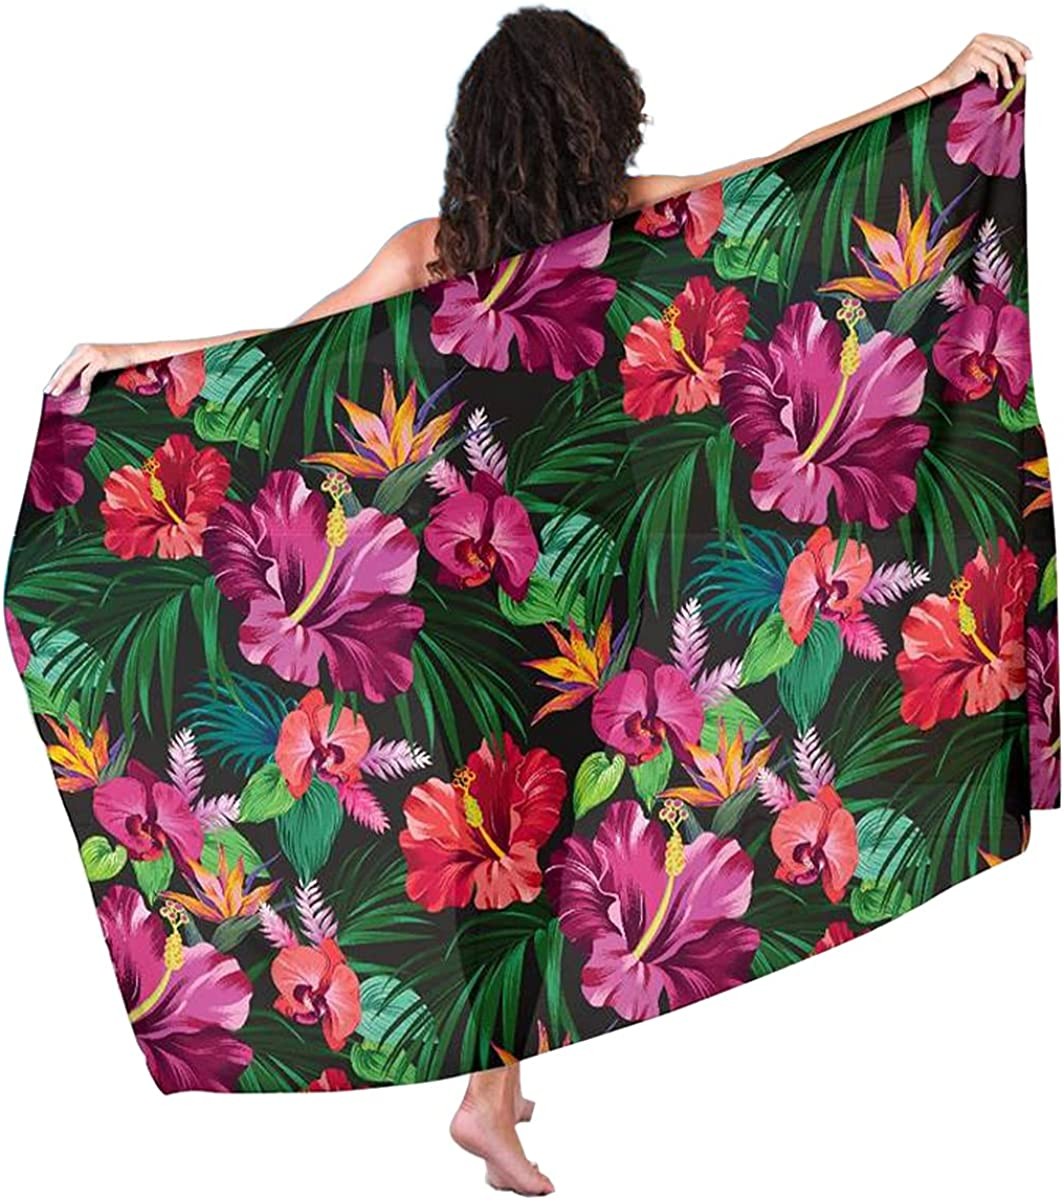 Hawaiian Flower Hibiscus Tropical Sarong Cover Pareo Discount is also underway Up Swimwear Department store